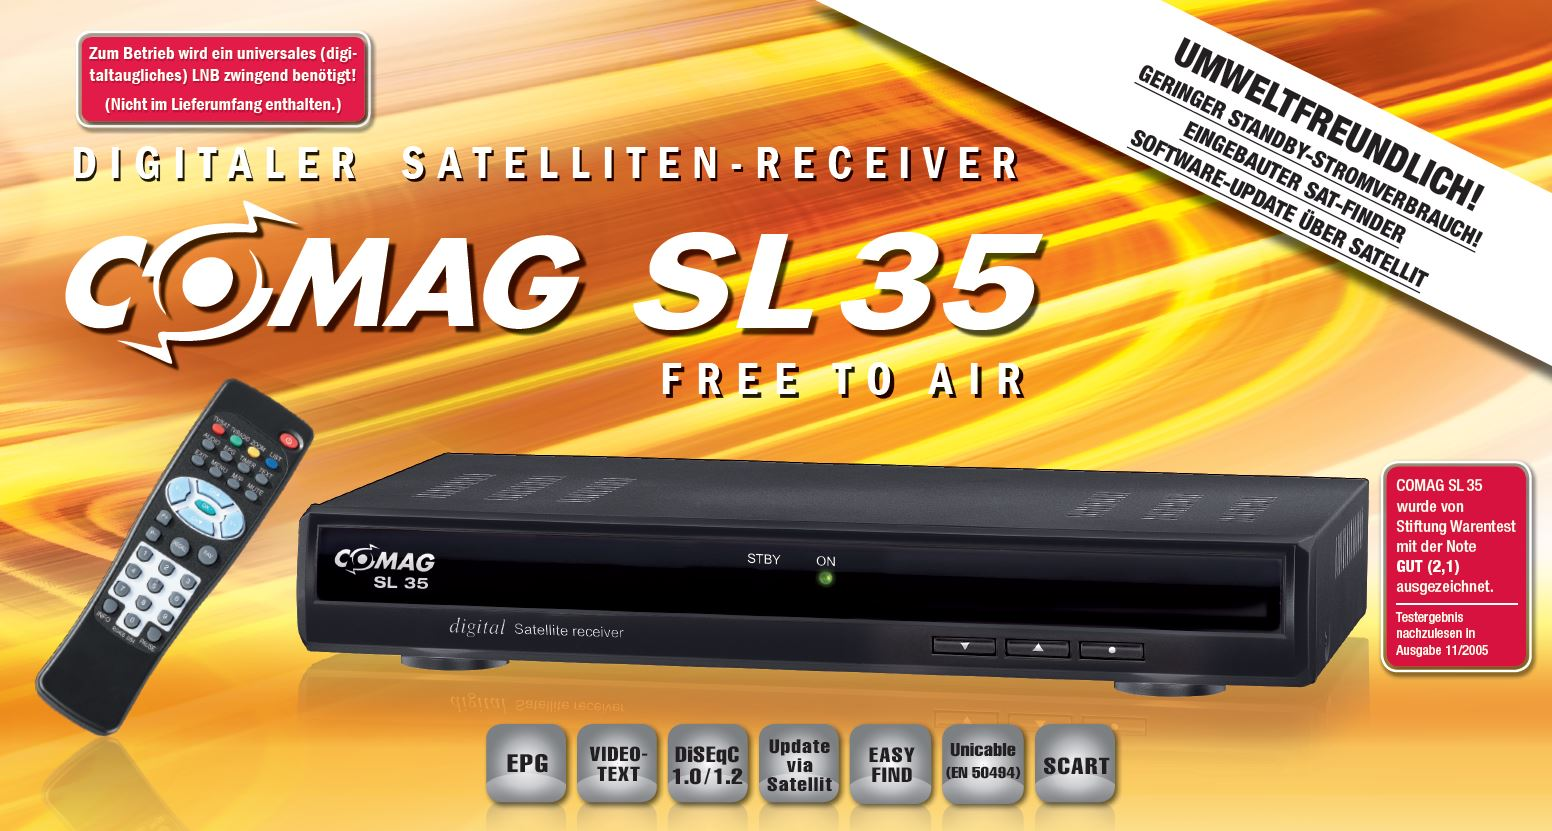 comag sl 35 digitaler satelliten receiver schwarz ebay. Black Bedroom Furniture Sets. Home Design Ideas